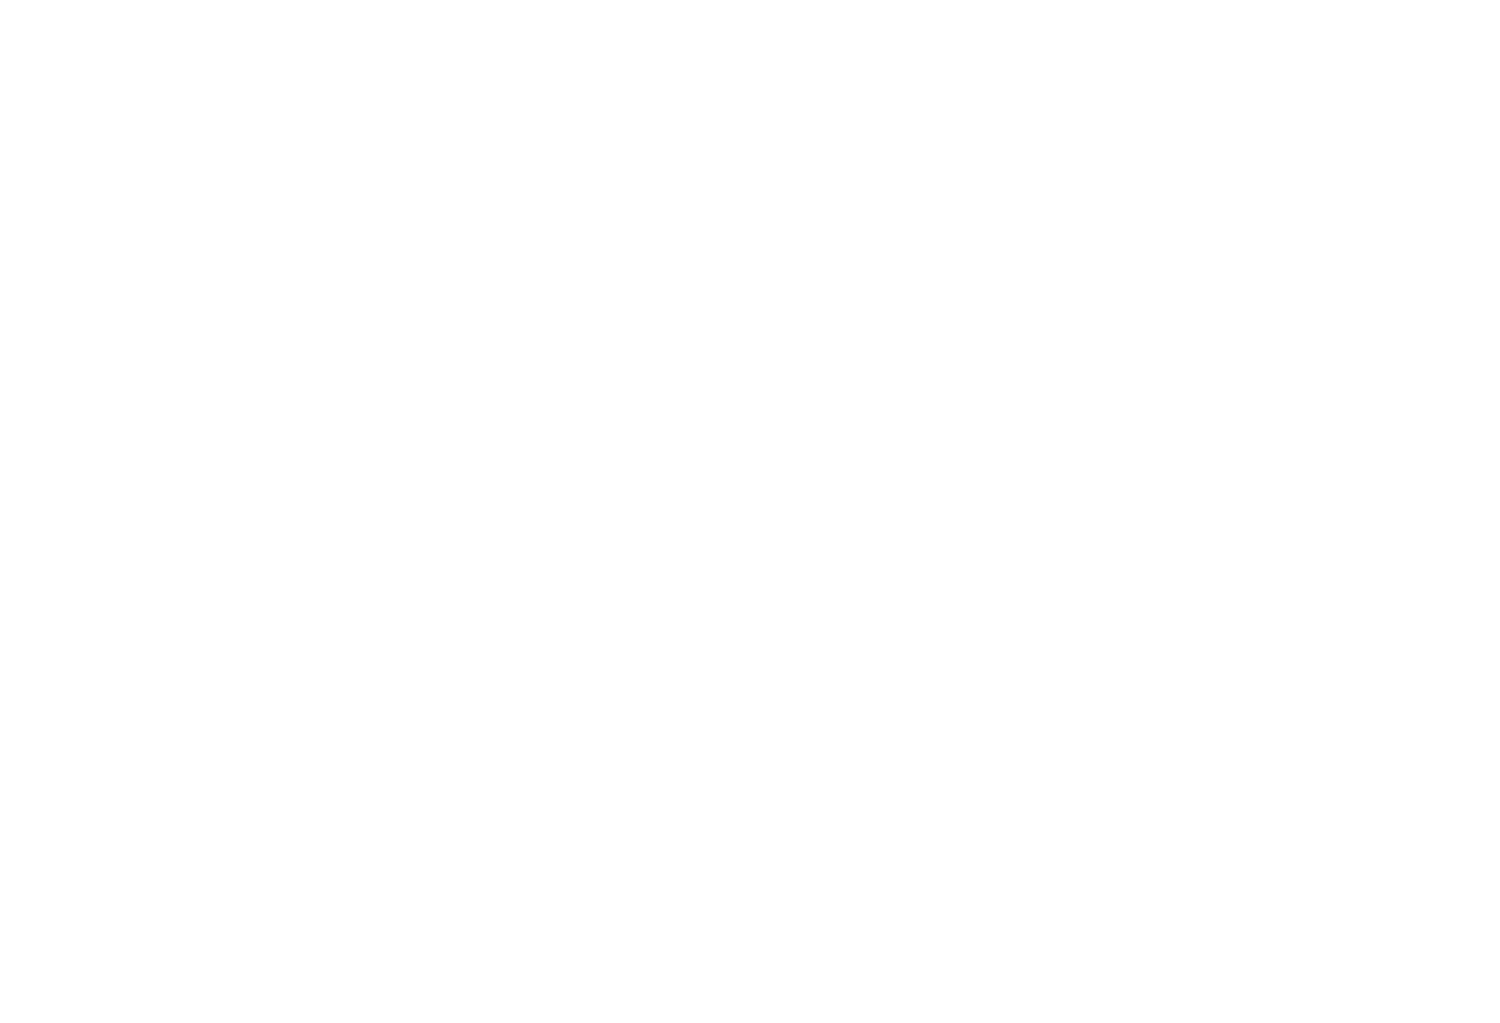 #LipOff2015 Ultimate Celebrity Lip Sync Battle